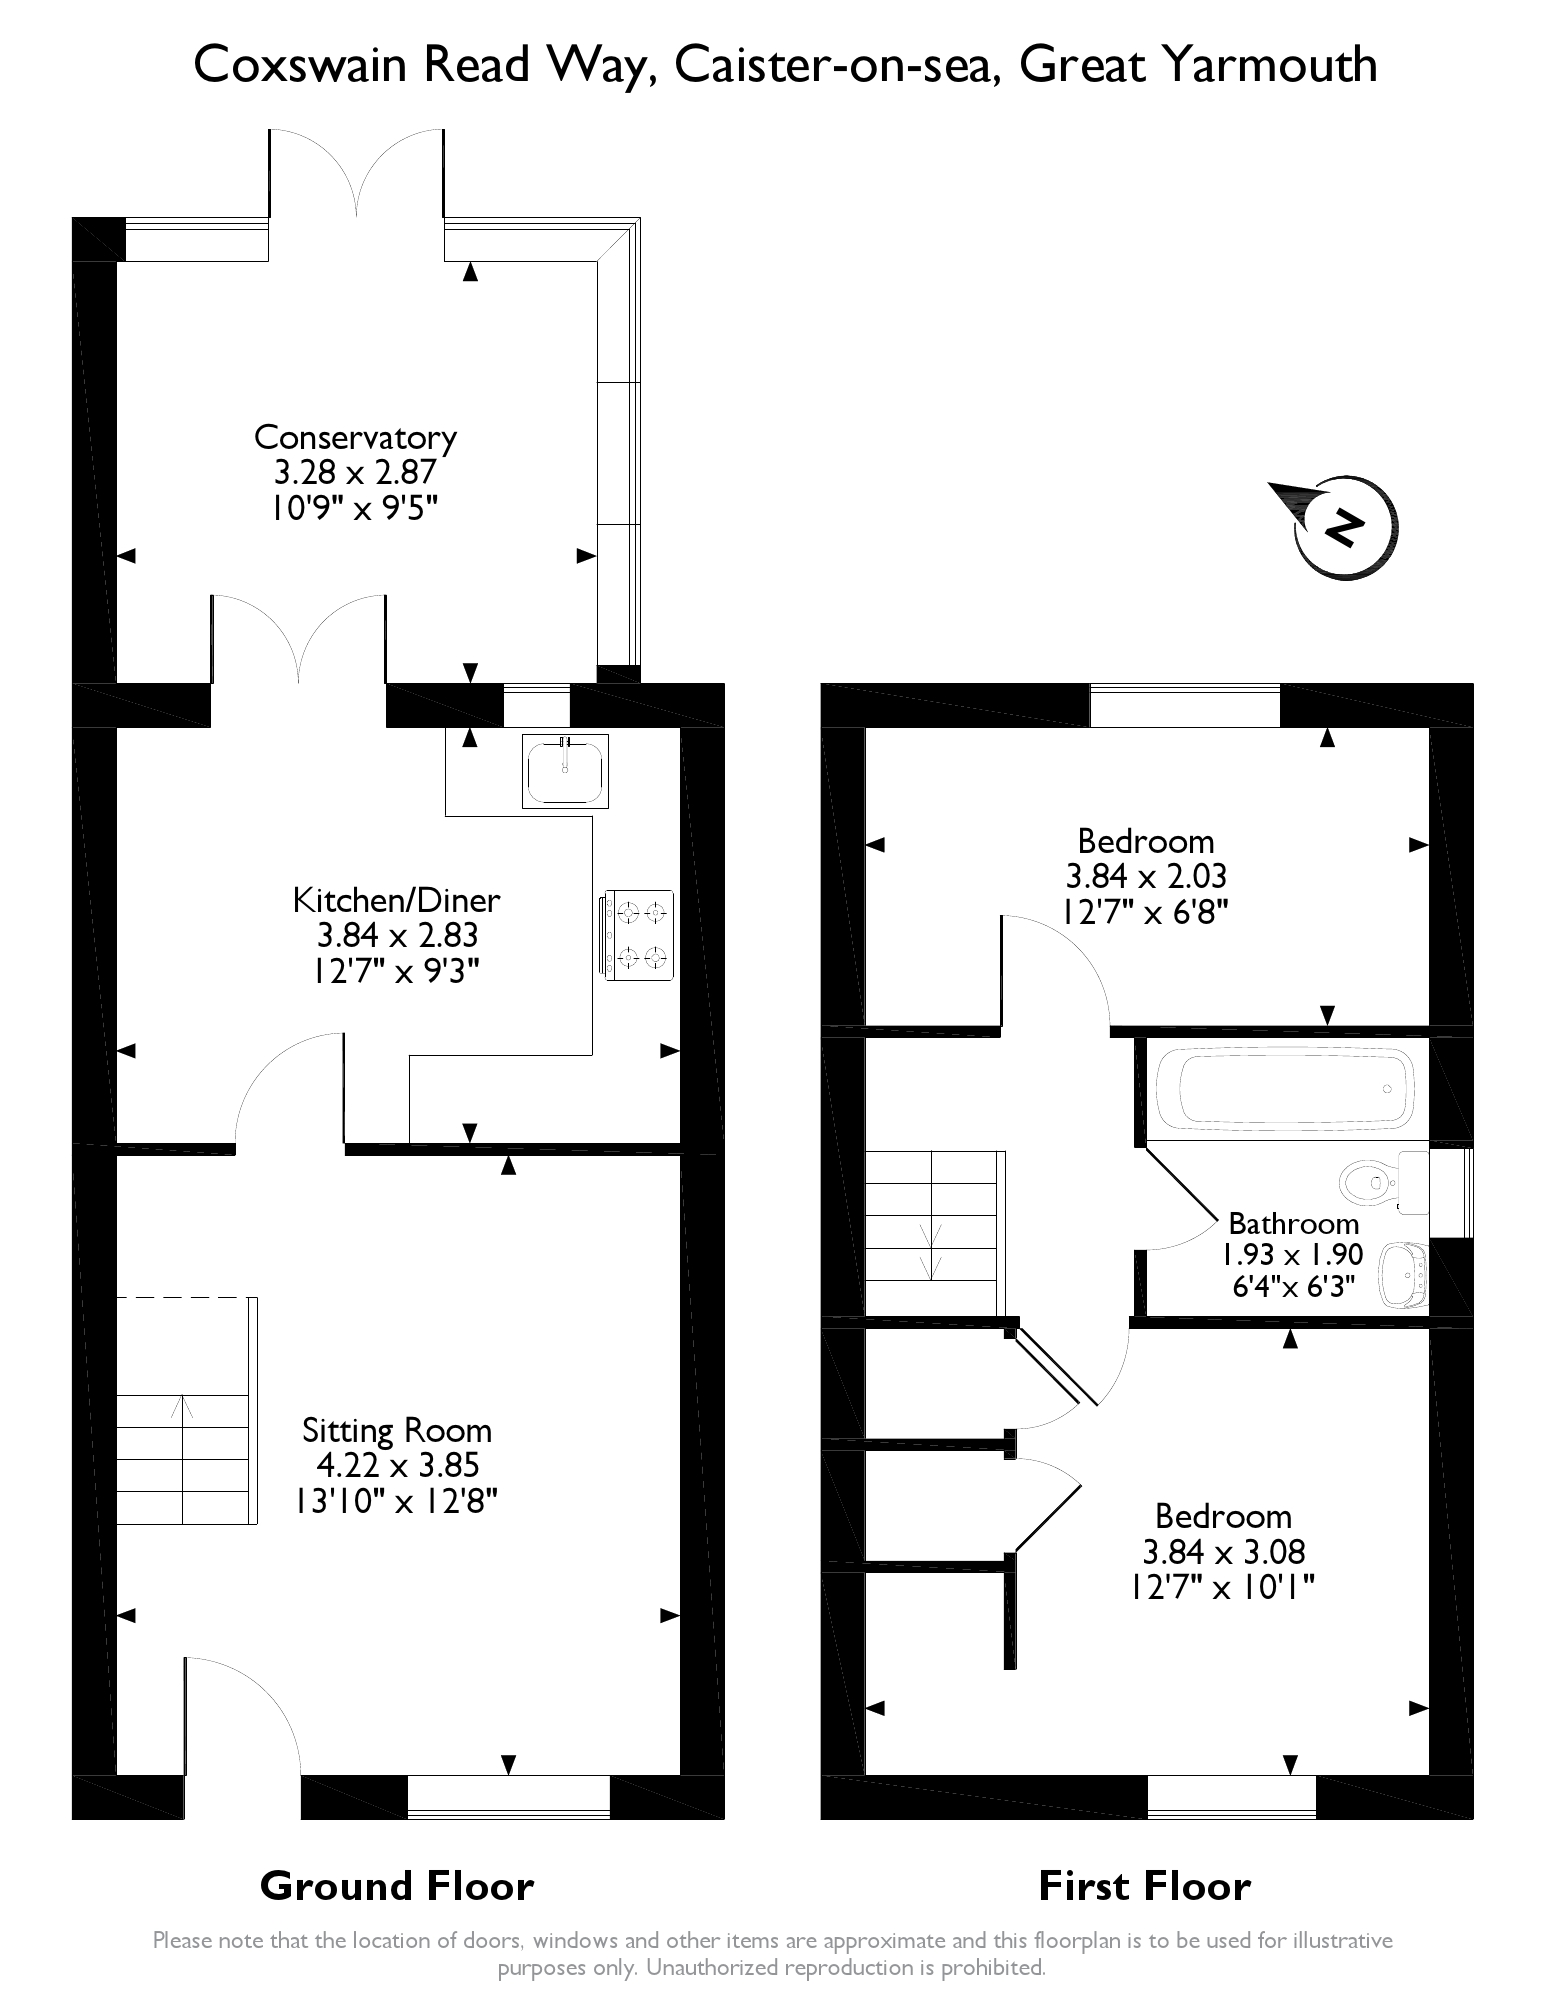 Coxswain Read Way, Caister on Sea, NR30 floor plan